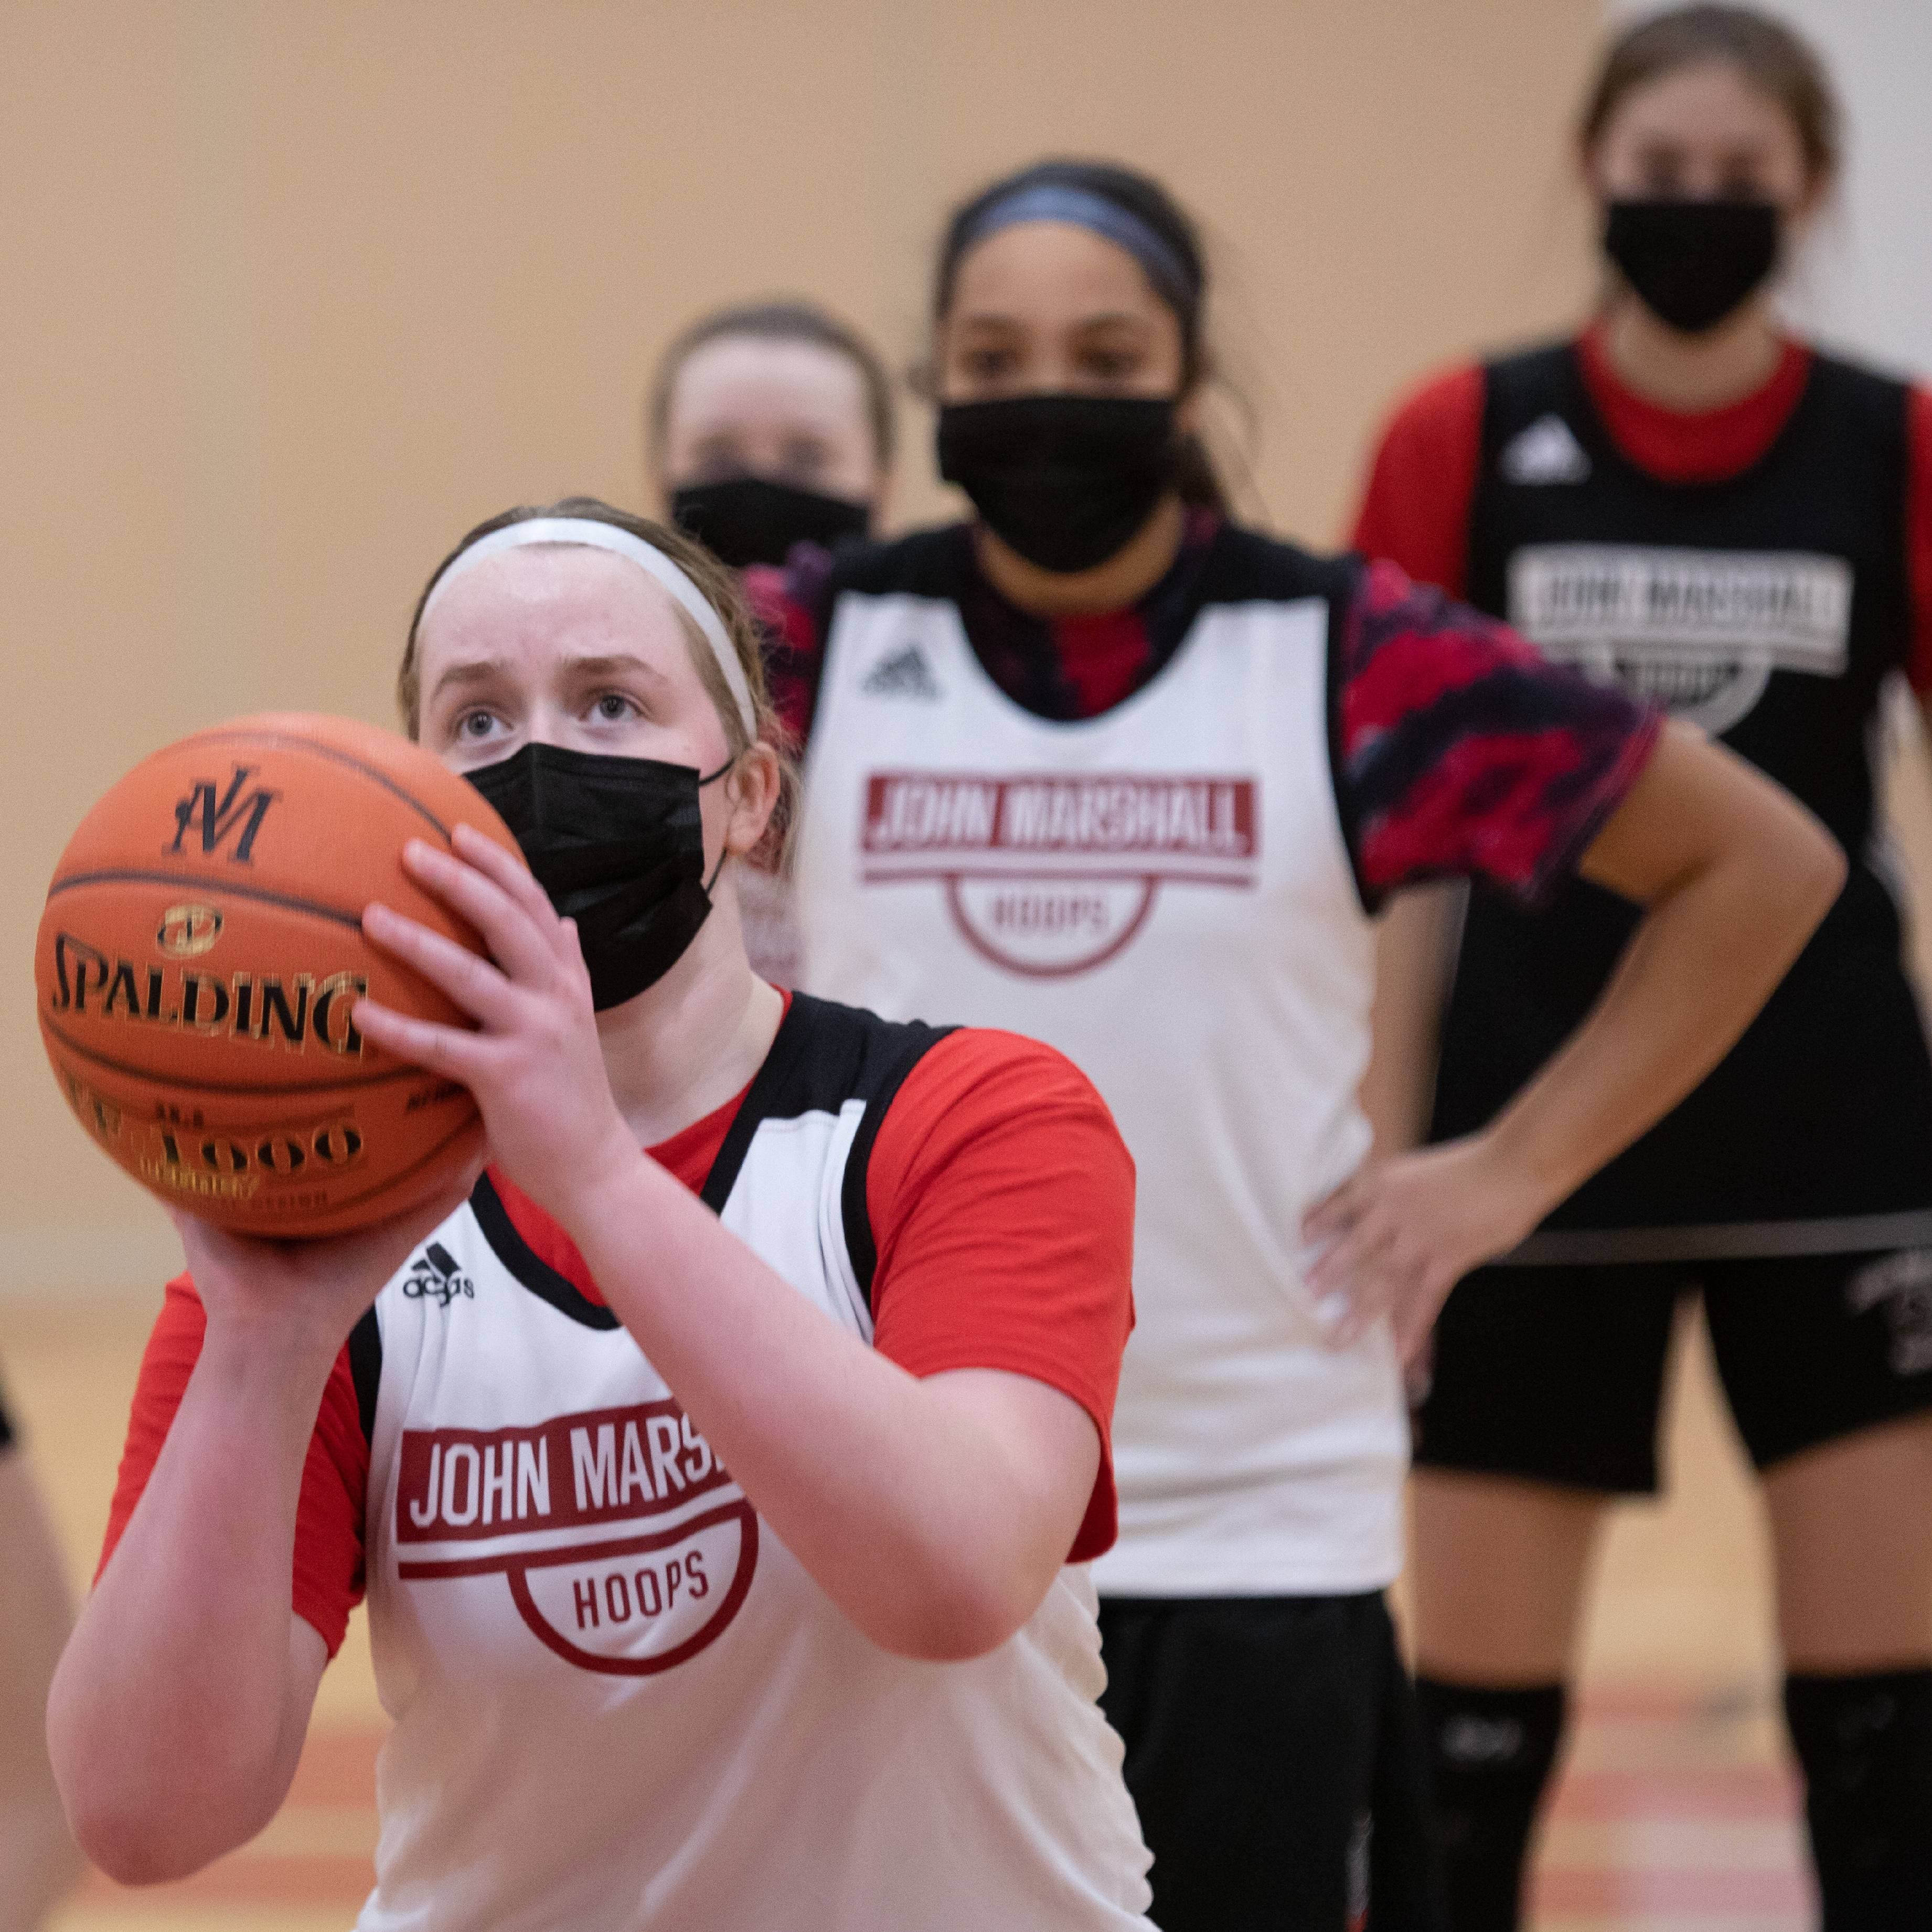 a diverse high school girls basketball team playing on a court in uniforms and wearing face masks